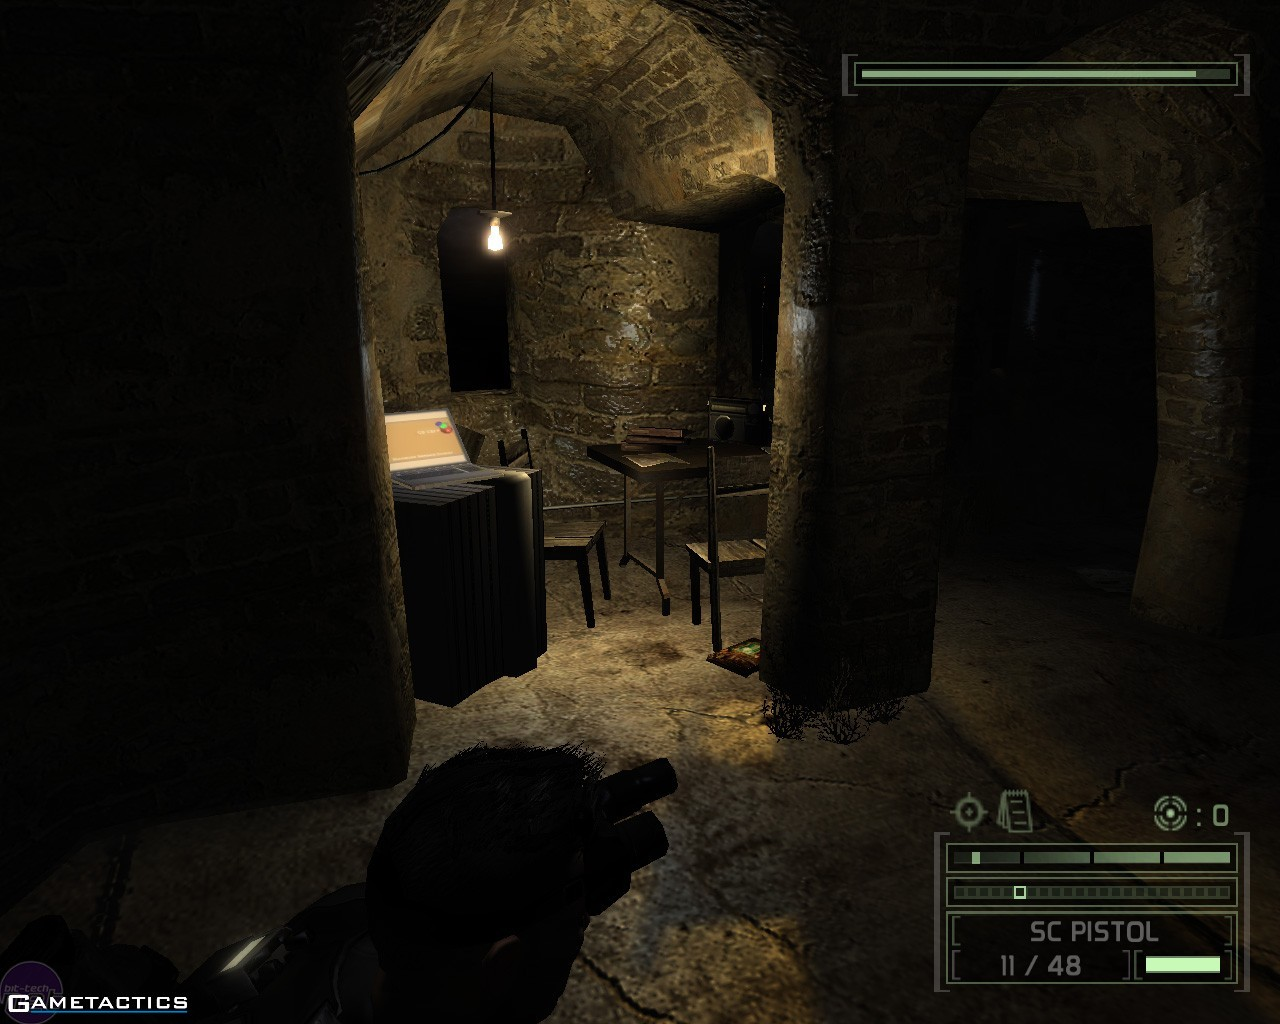 splinter-cell-chaos-theory-screenshot-02